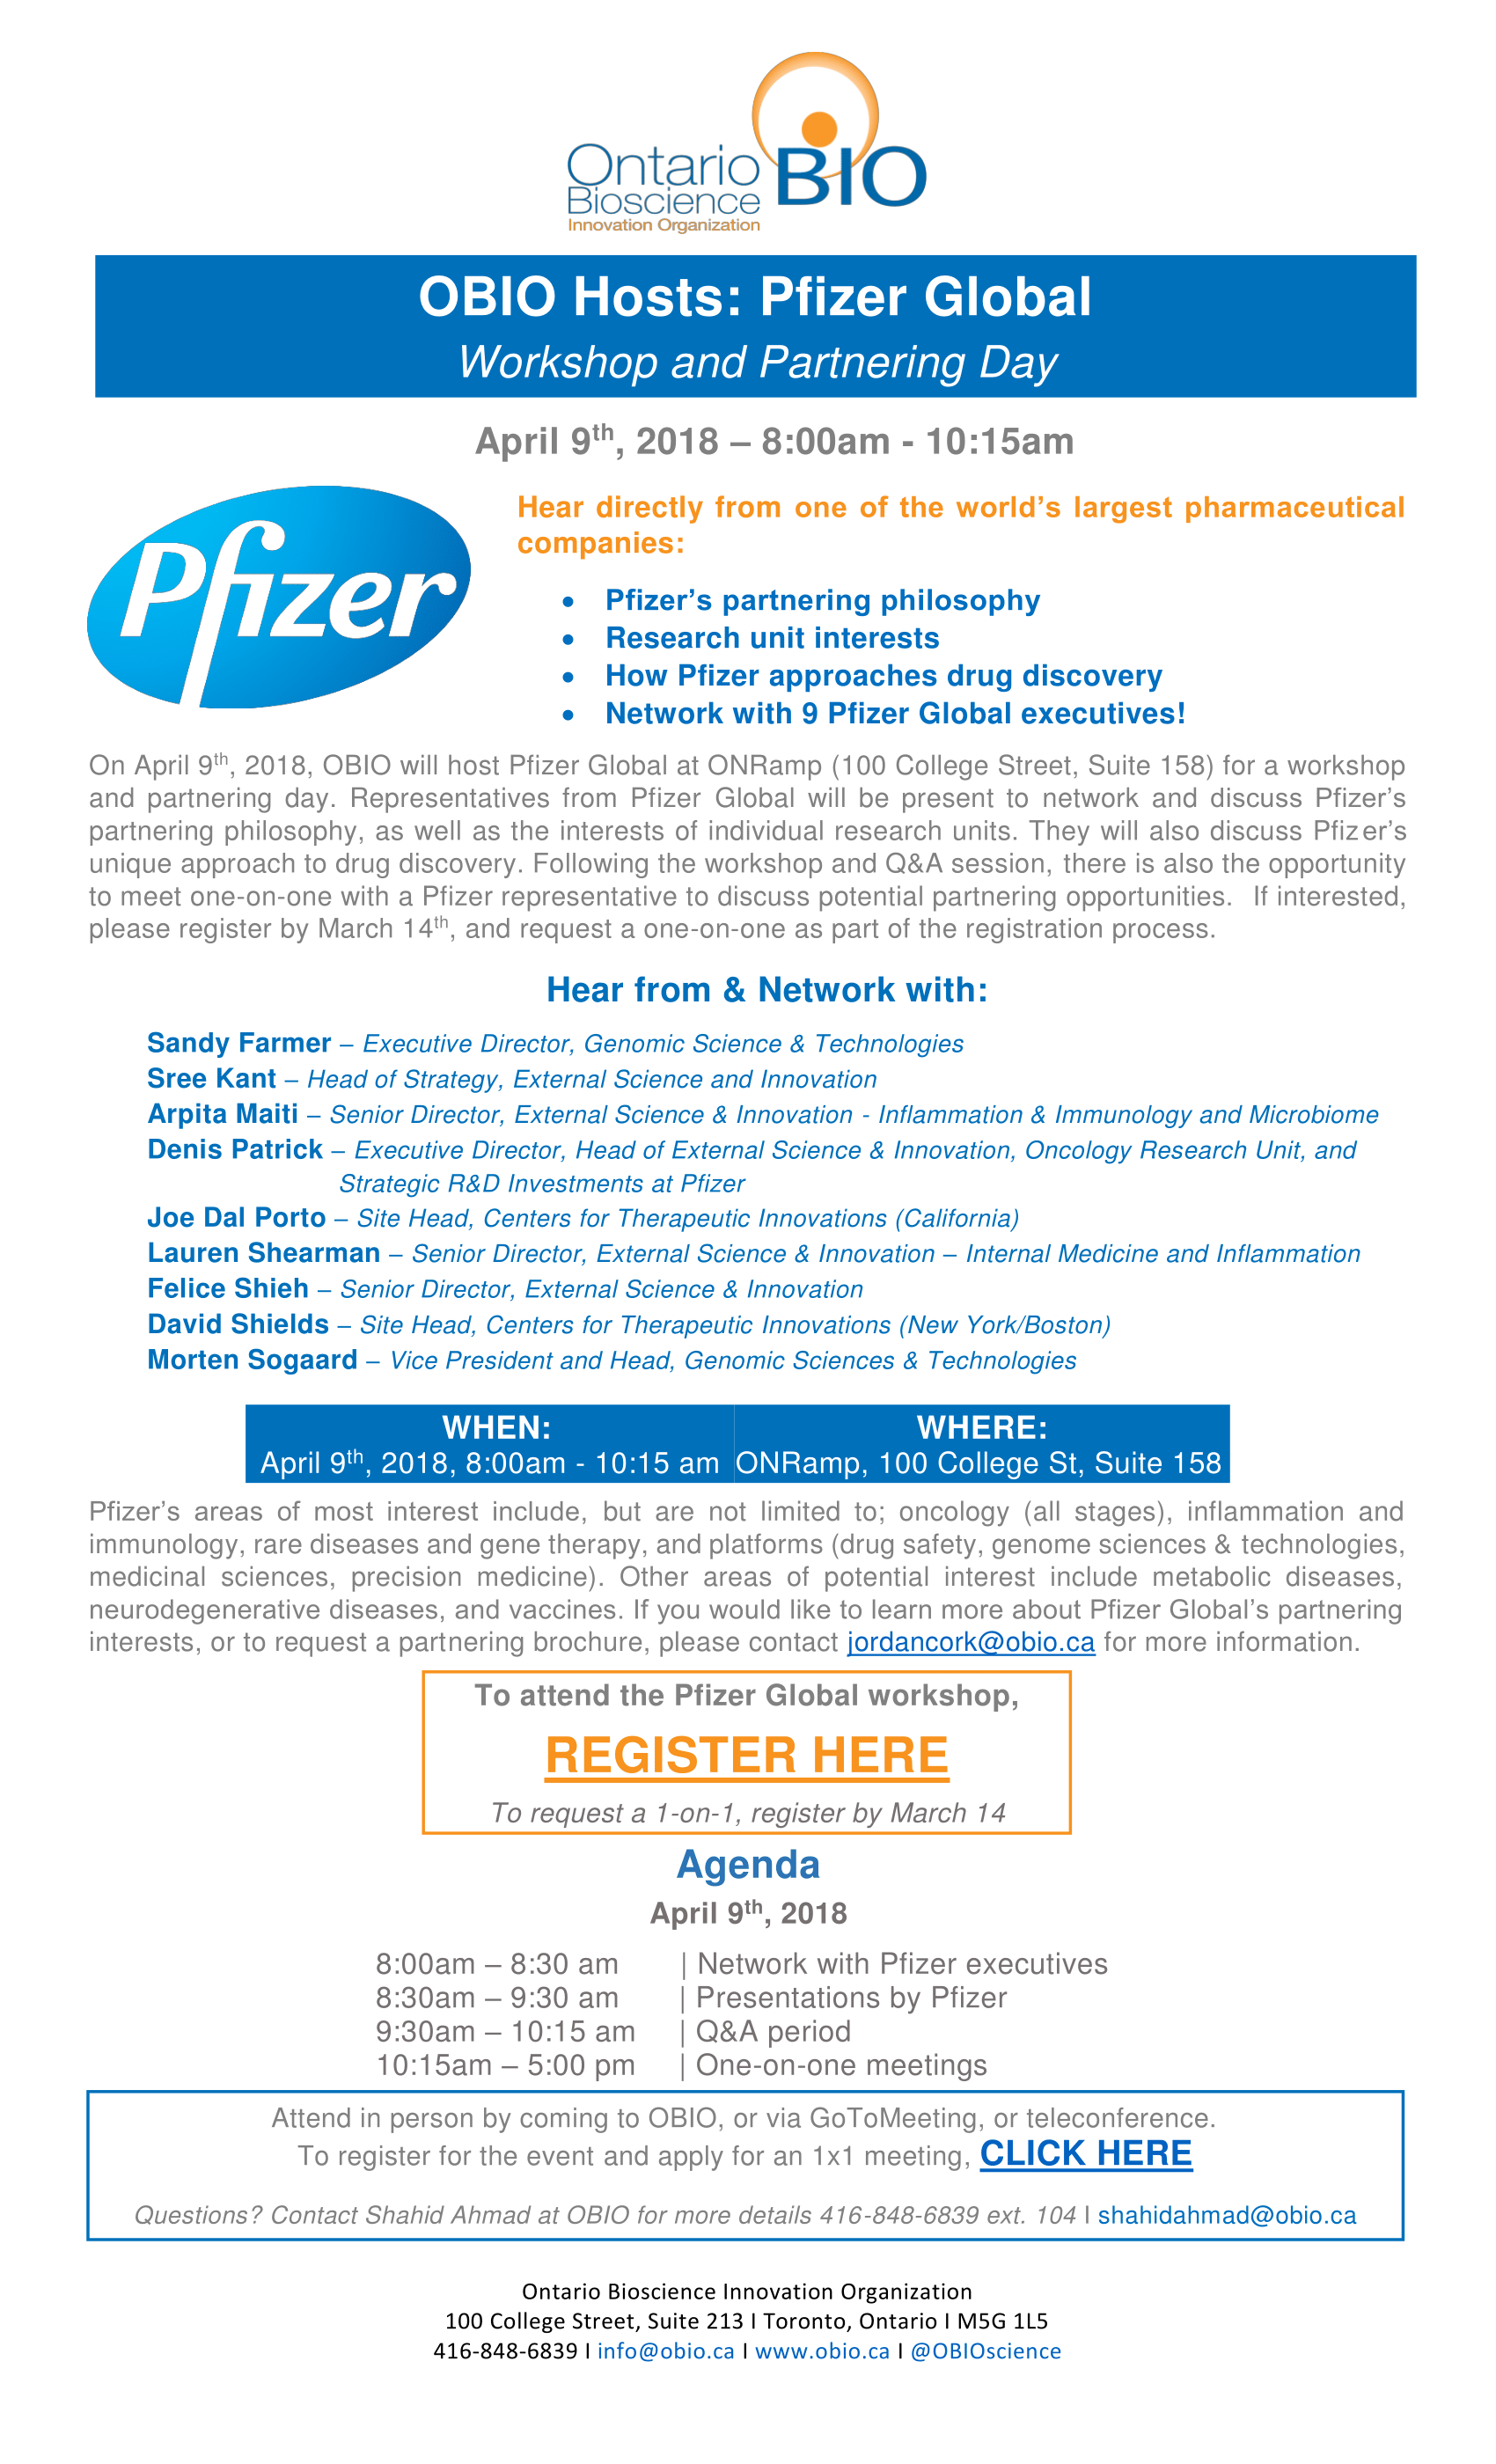 Pfizer Global Workshop and Partnering Day Flyer.png